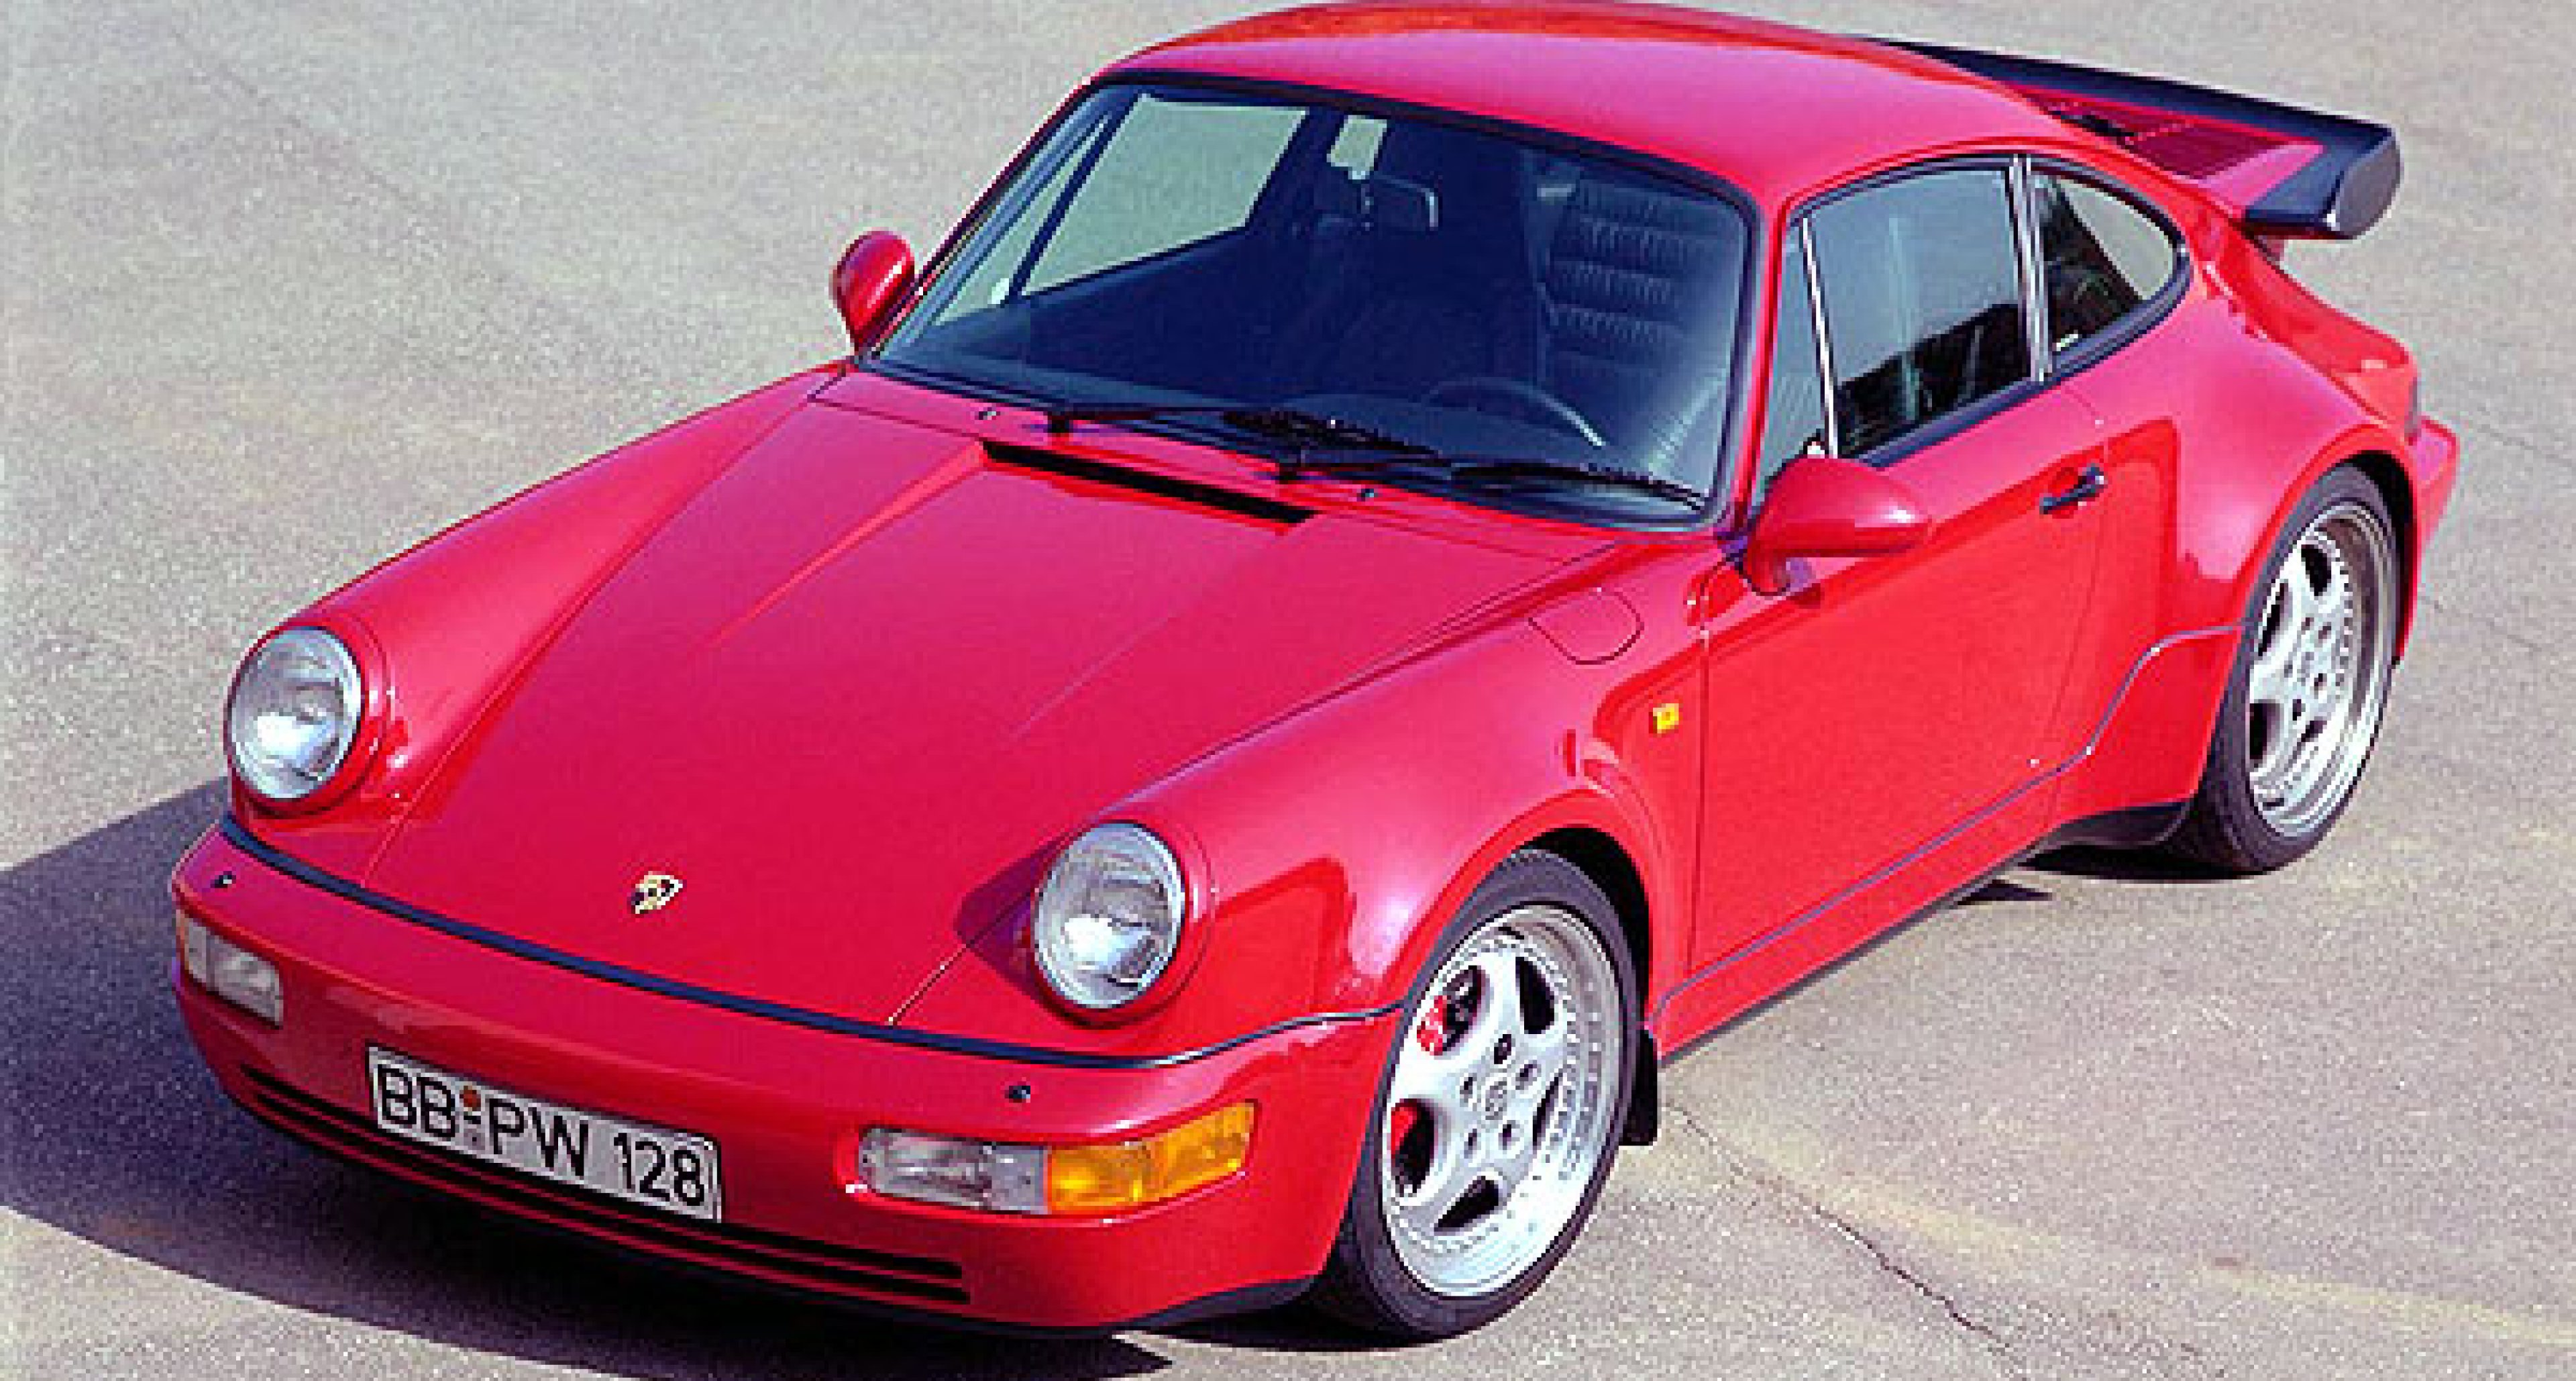 Thirty years of the Porsche 911 Turbo